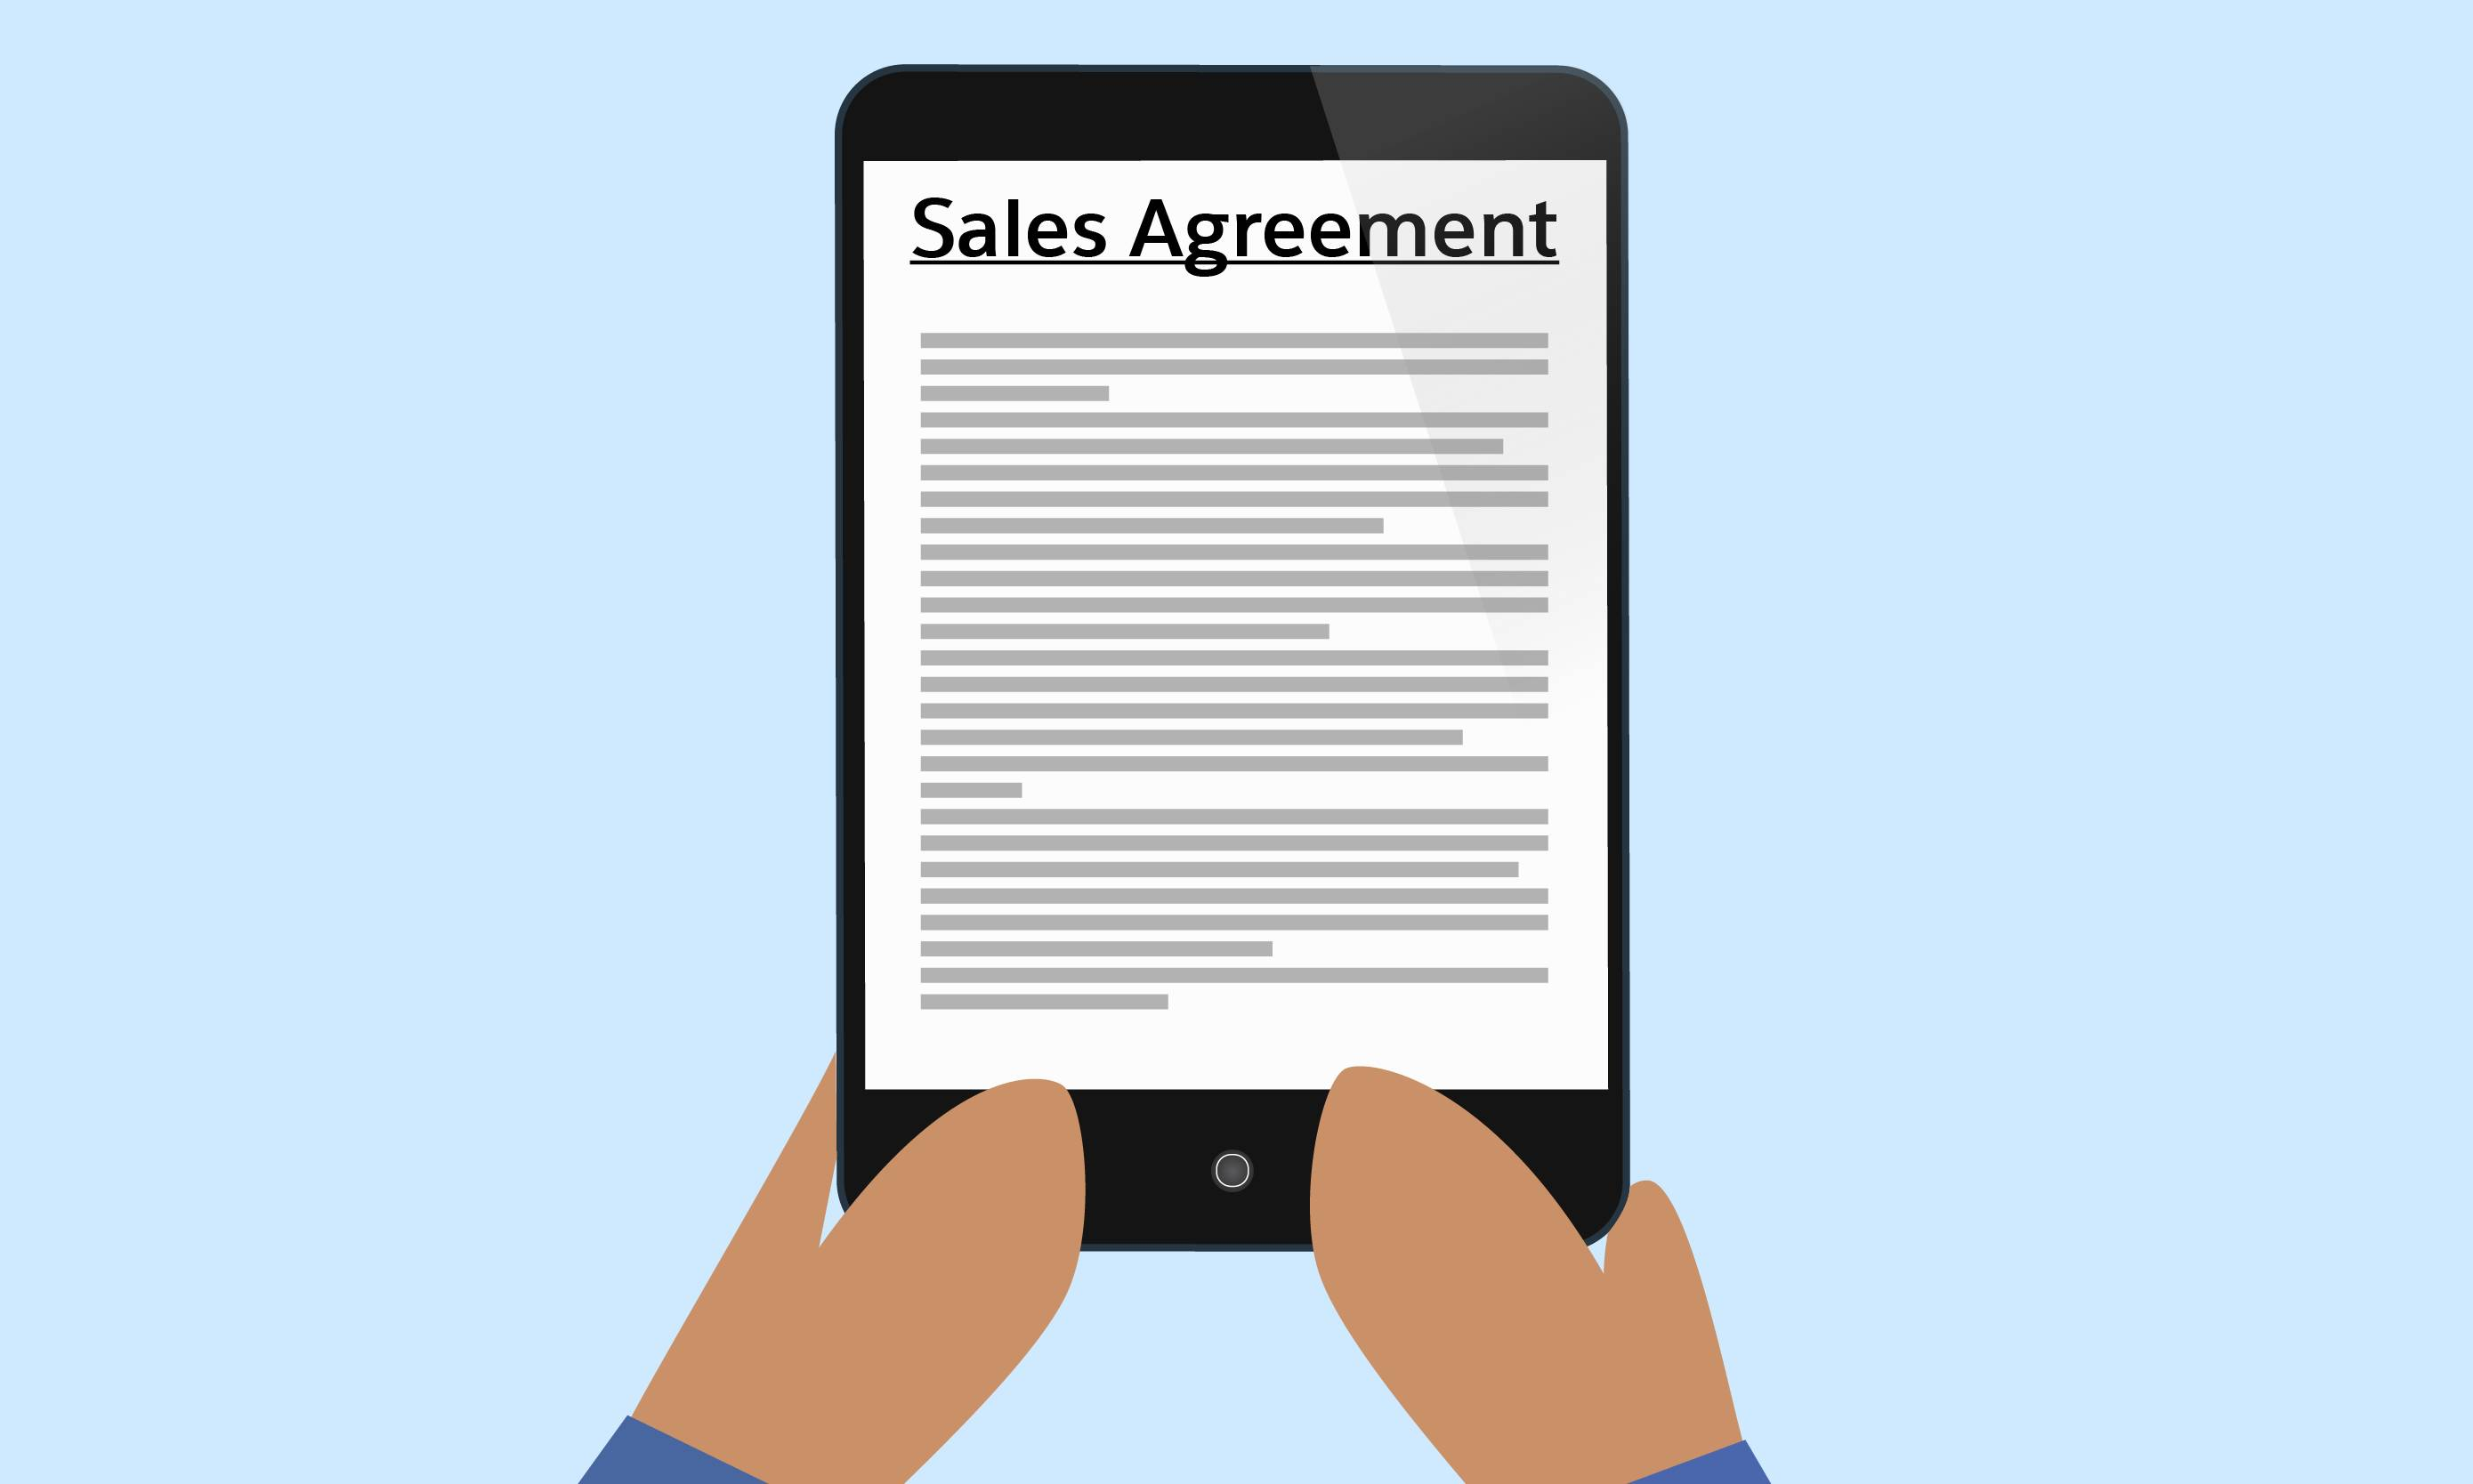 Sales agreements let reps know whether their customers are on track with their orders, and when they need to alert them regarding their orders.